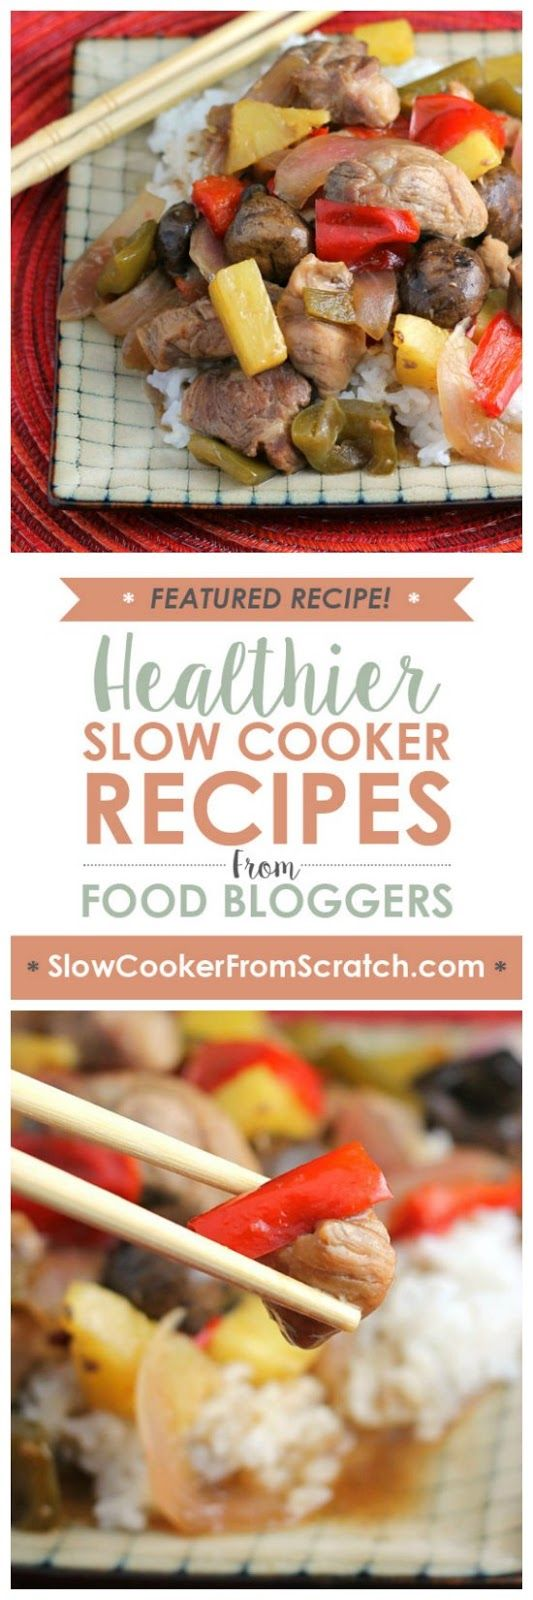 No need to order Chinese food, just make this tasty Slow Cooker Sweet and Sour Pork from The Weary Chef! [featured on SlowCookerFromScratch.com]